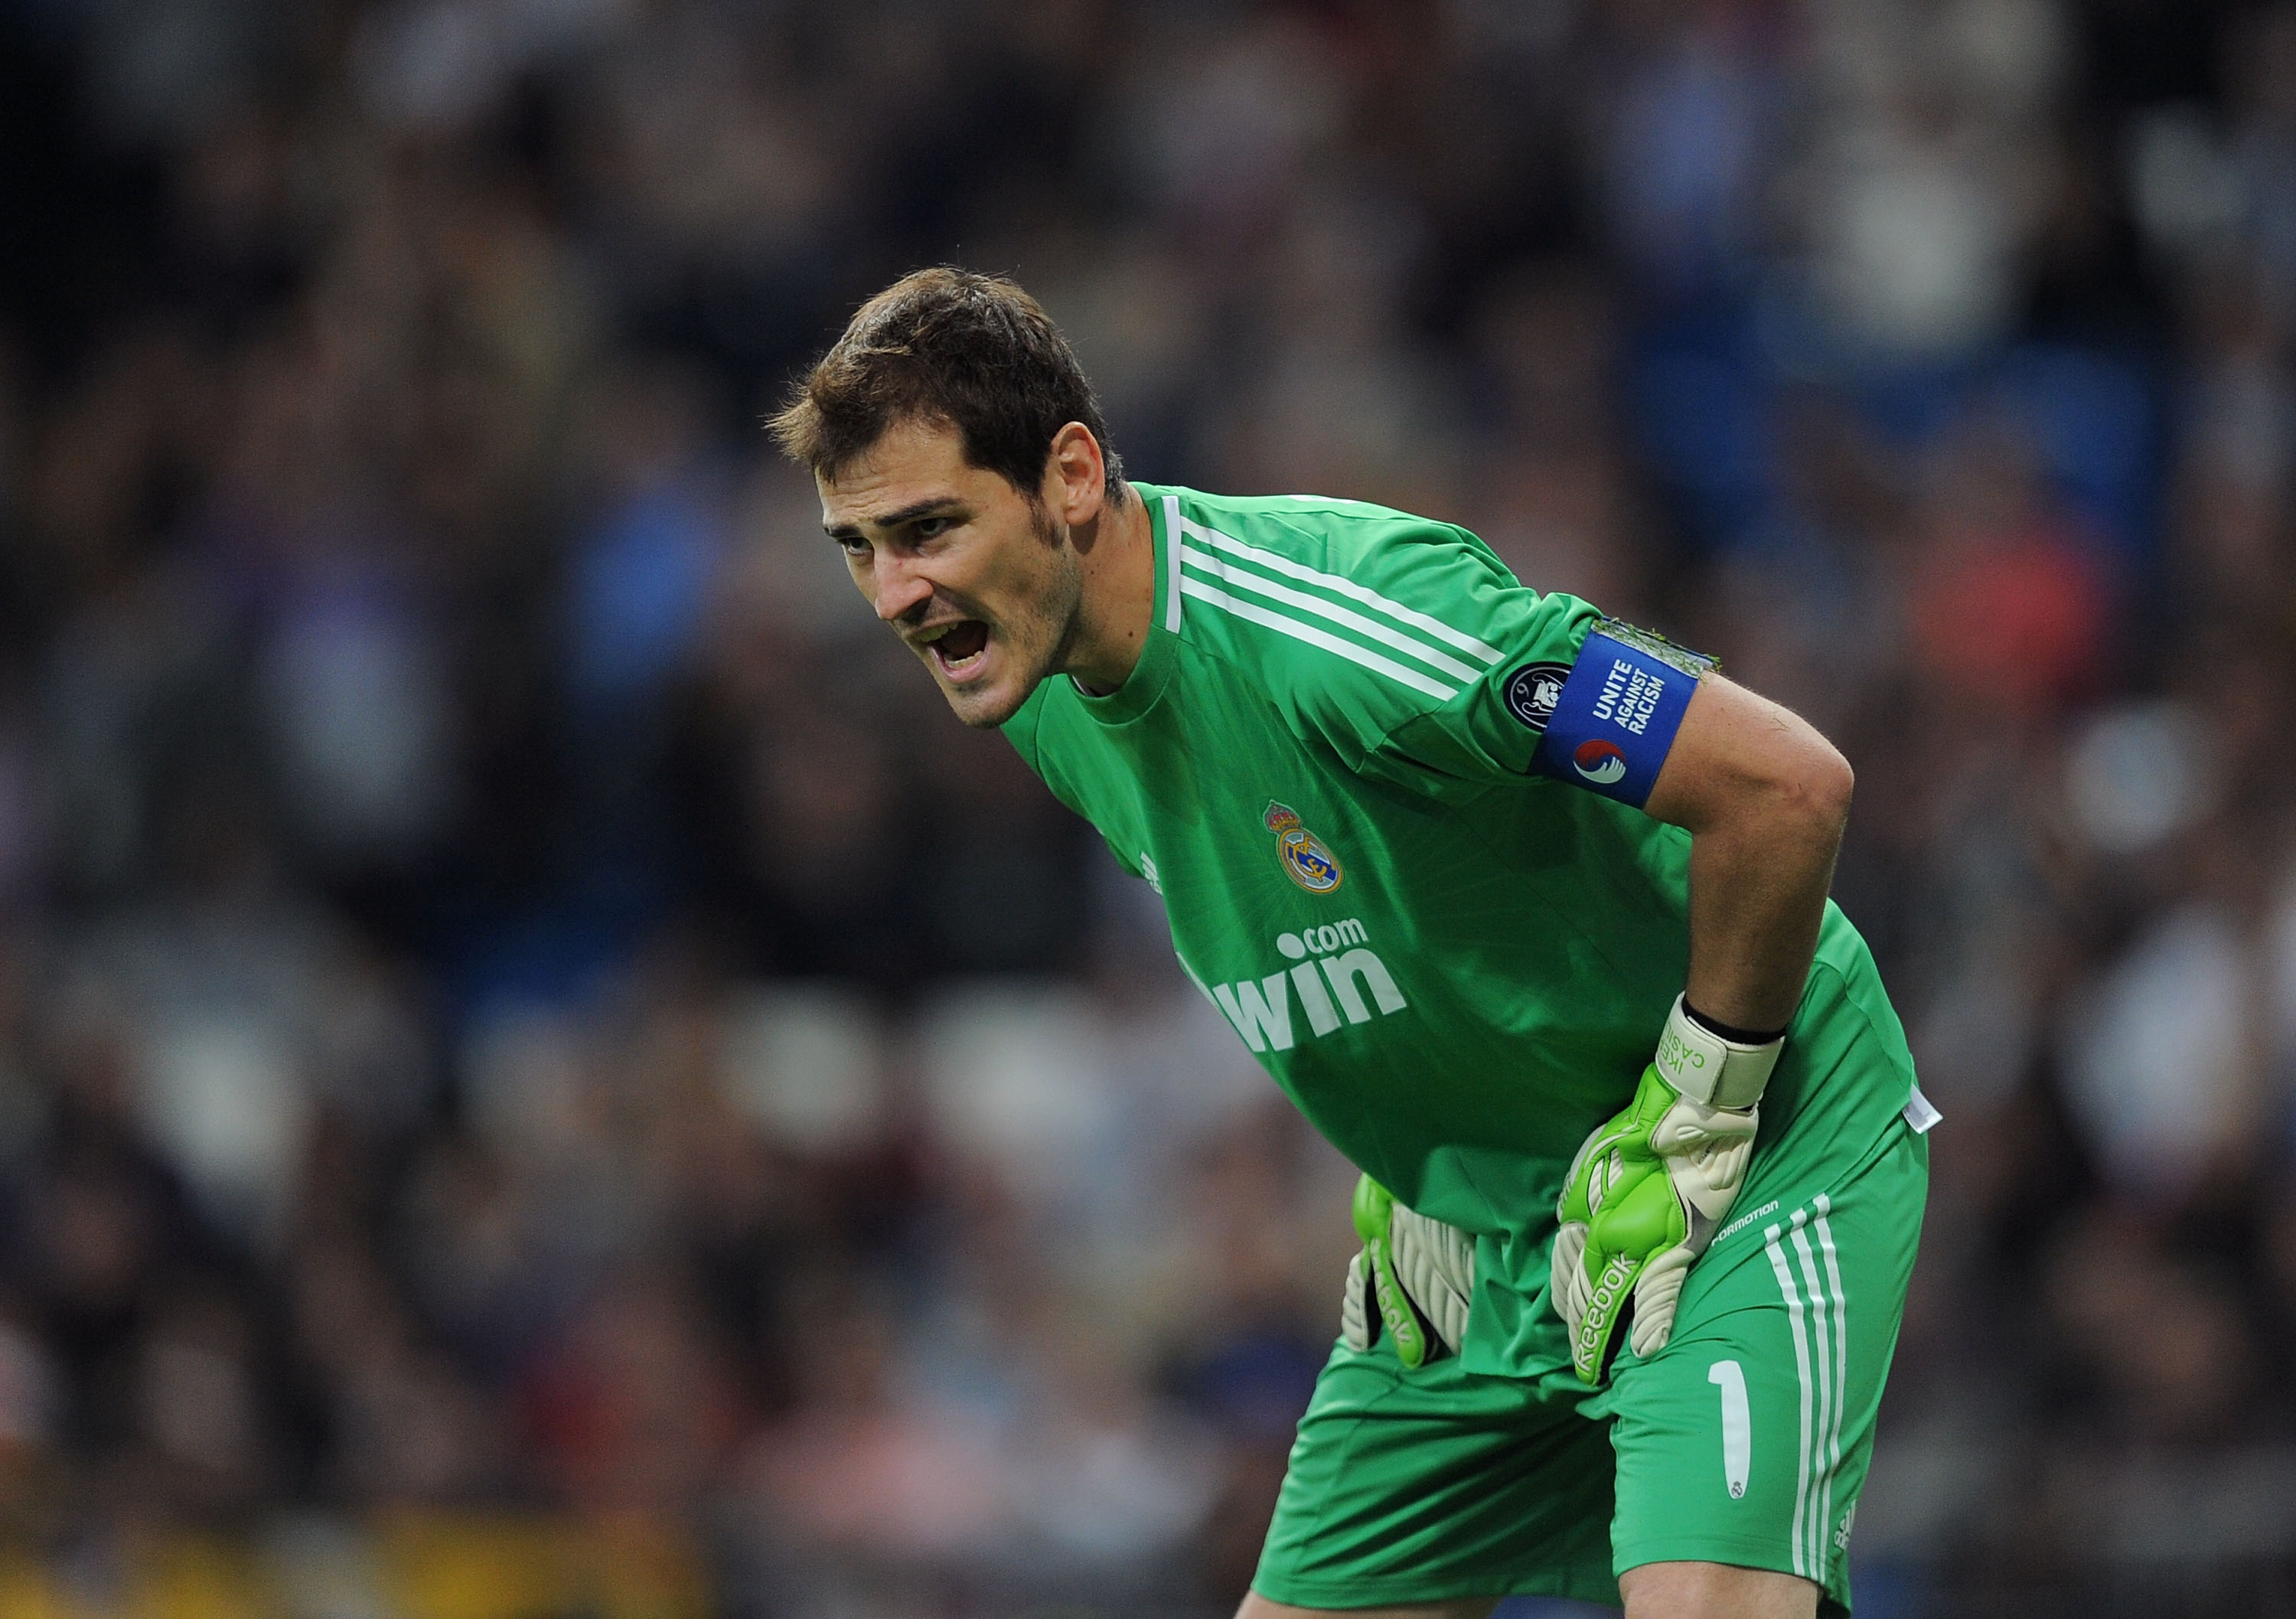 MADRID, SPAIN - OCTOBER 19: Iker Casillas of Real Madrid urges on his side during the UEFA Champions League Group G match between Real Madrid and AC Milan at Estadio Santiago Bernabeu on October 19, 2010 in Madrid, Spain.  (Photo by Denis Doyle/Getty Imag